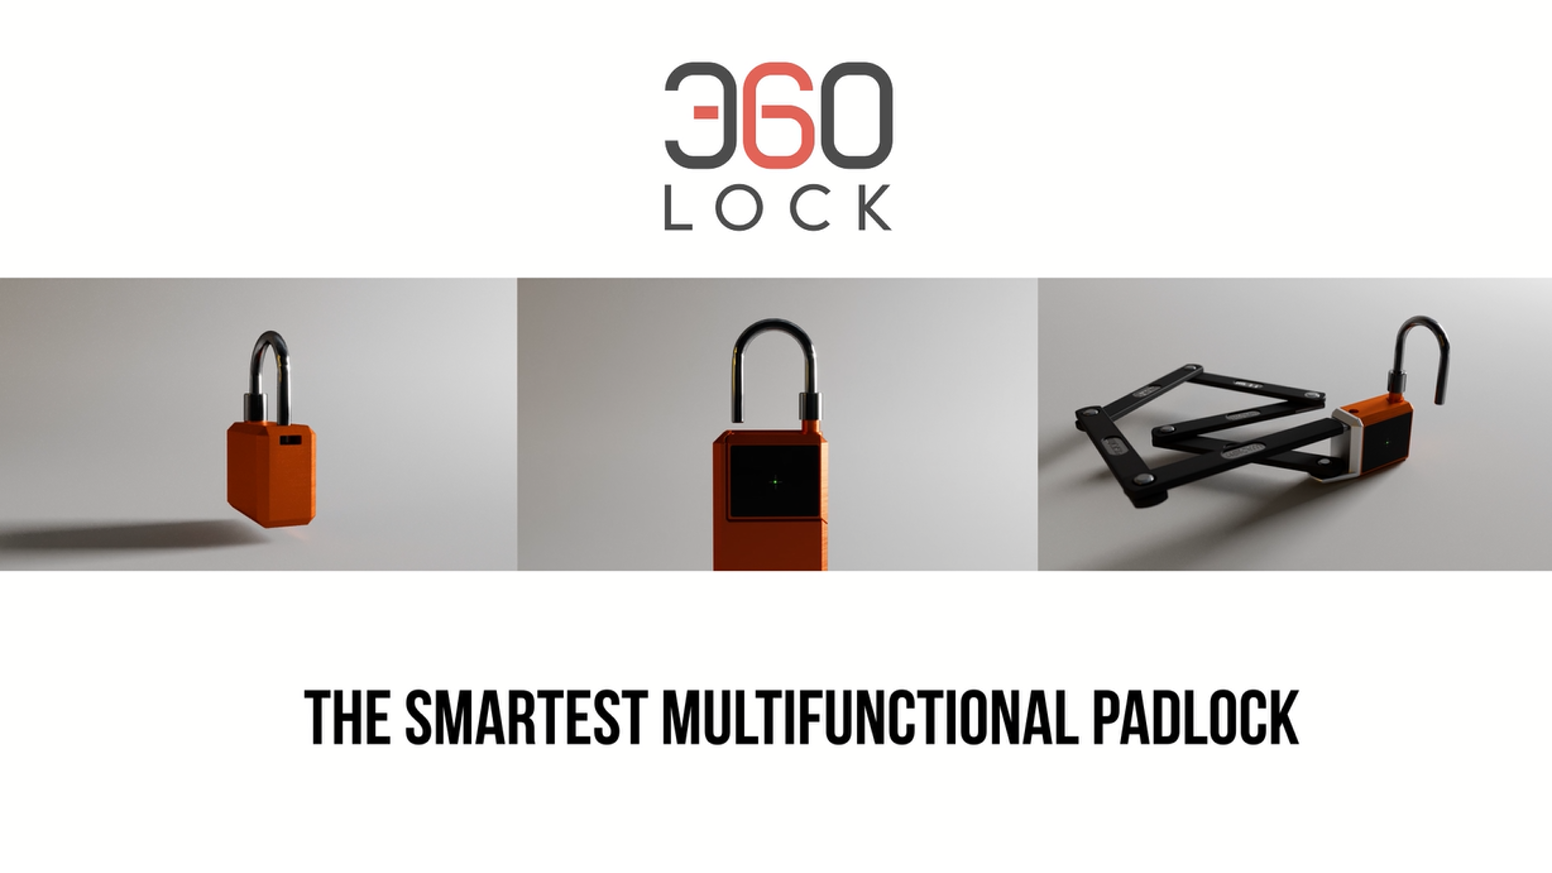 360LOCK is a fully customizable smart padlock with essential accessories for small objects storage, bicycles and many more to come.